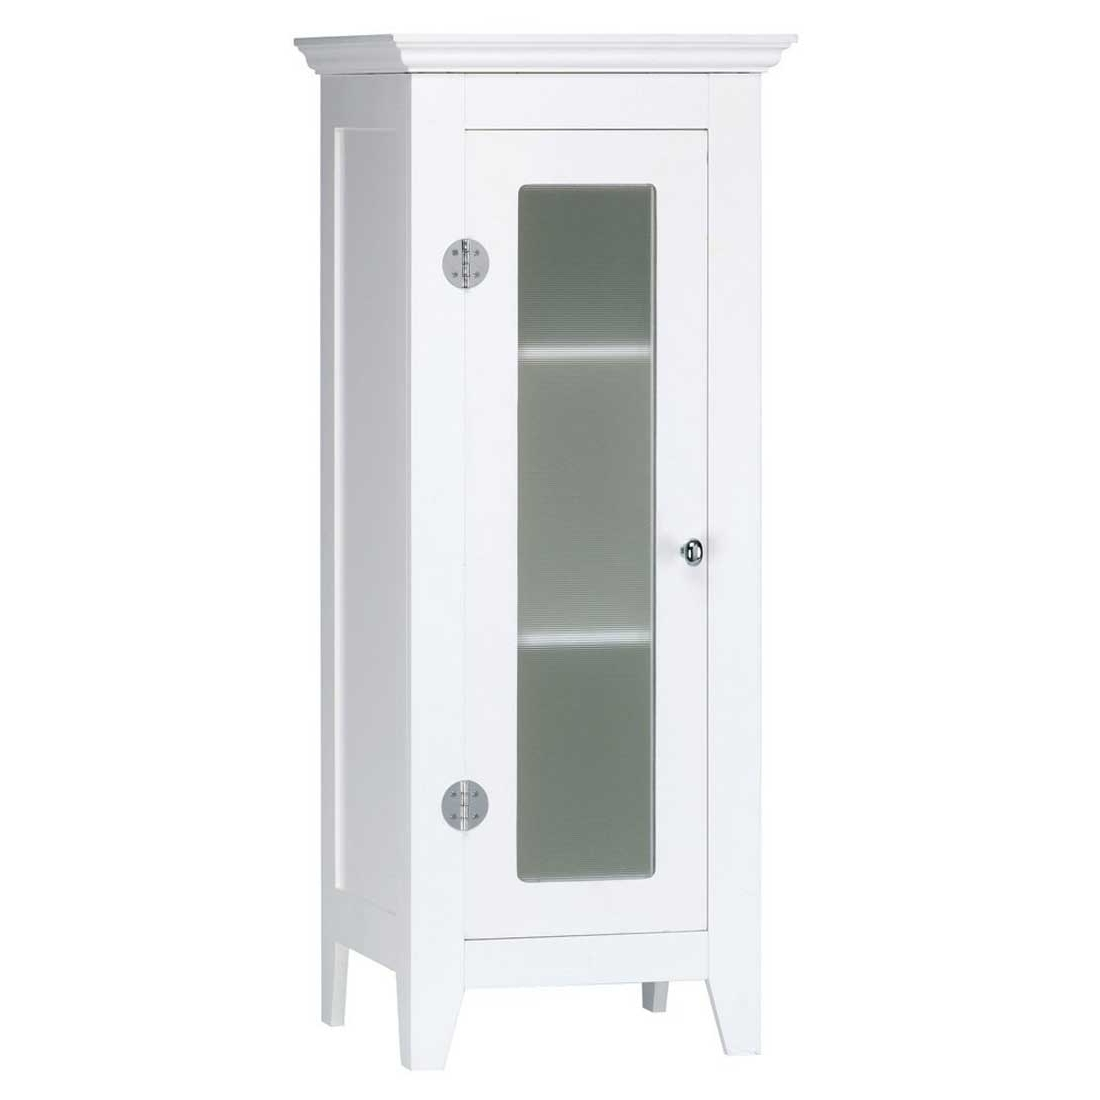 Tall Bathroom Cabinets Free Standing Ikea